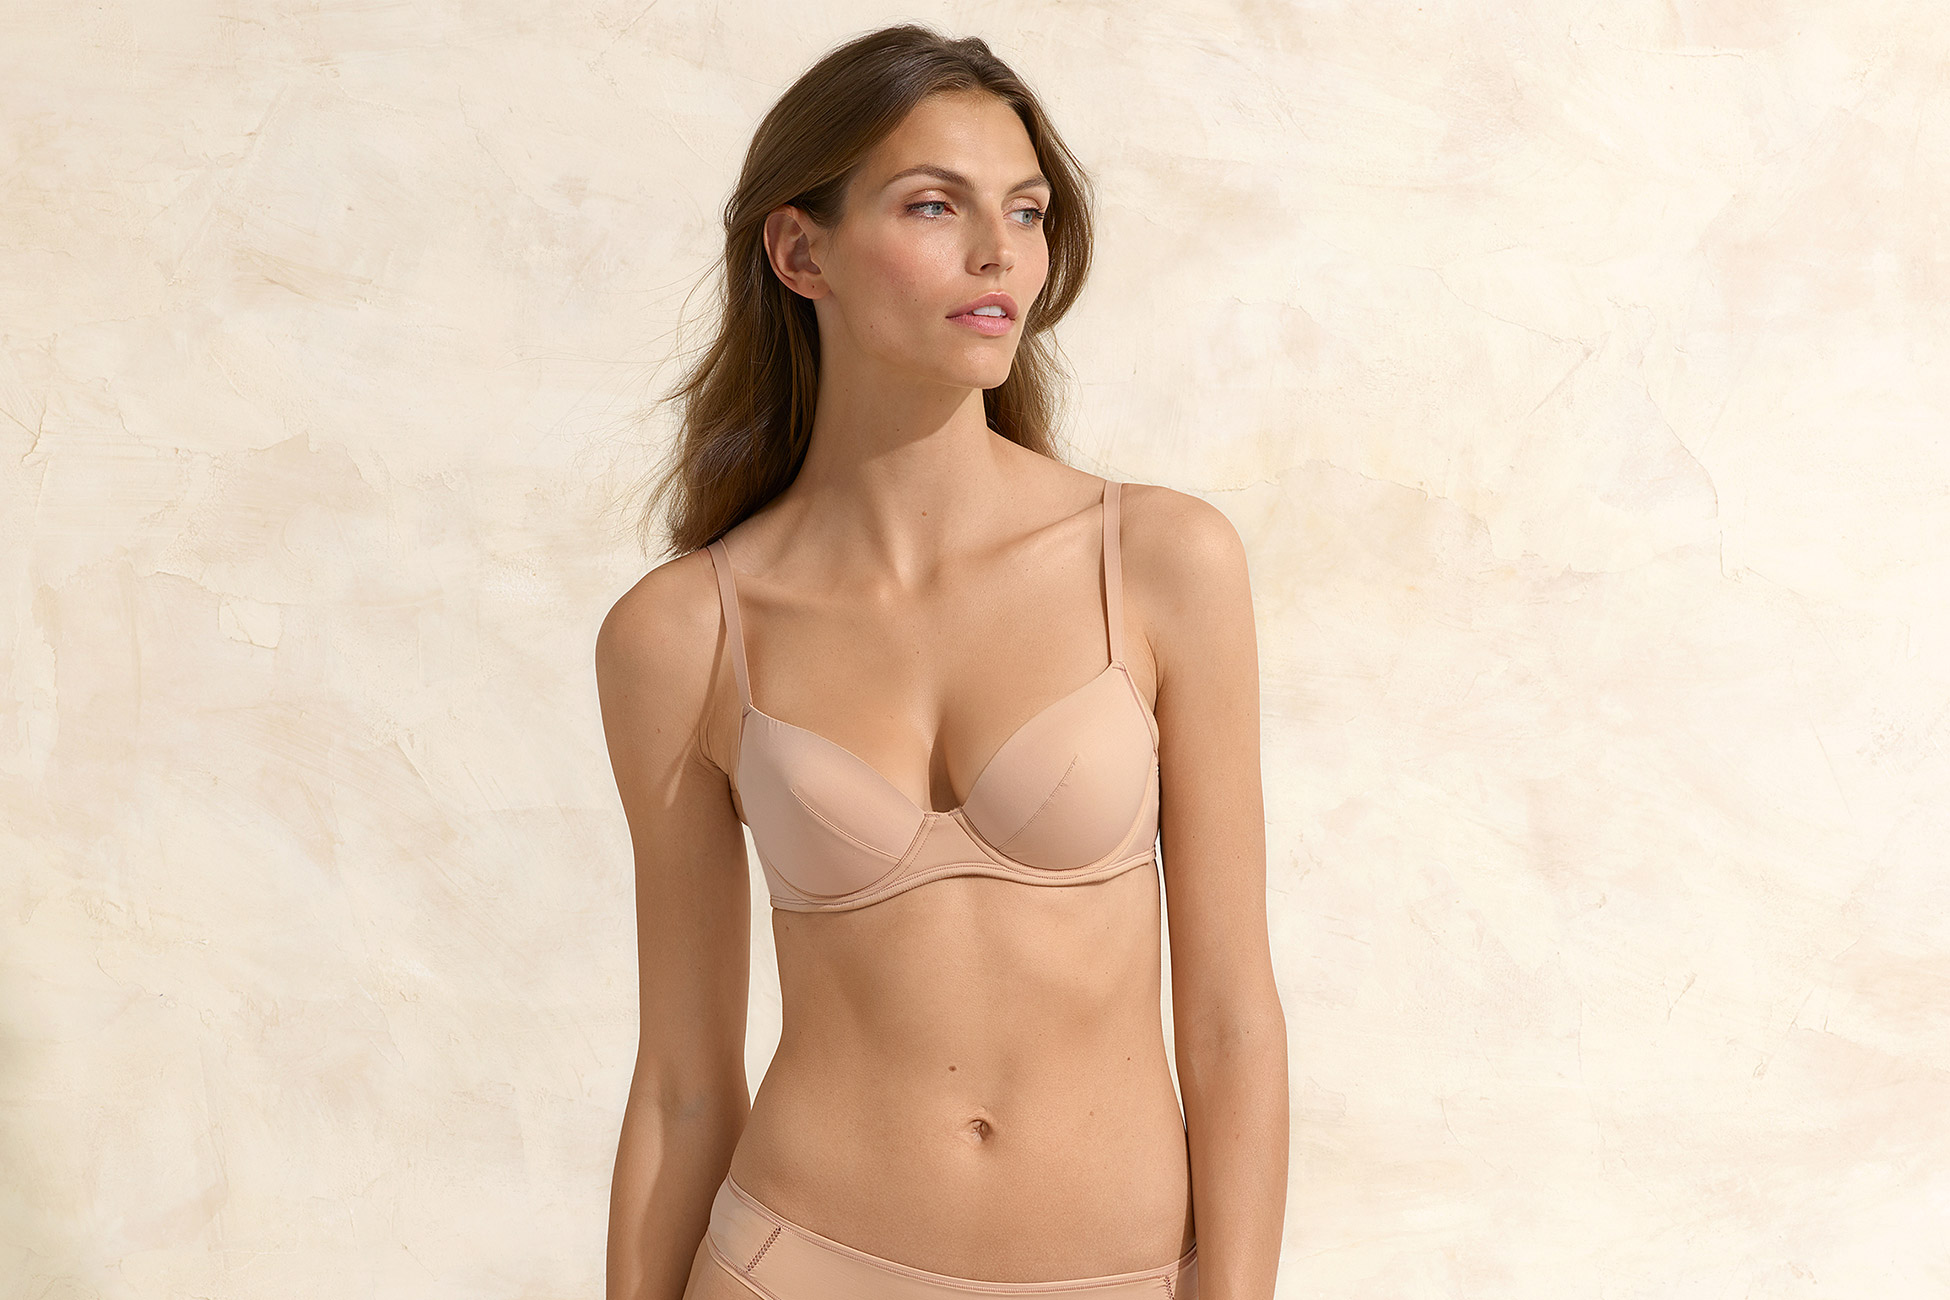 Camila Push-up vue standard 1